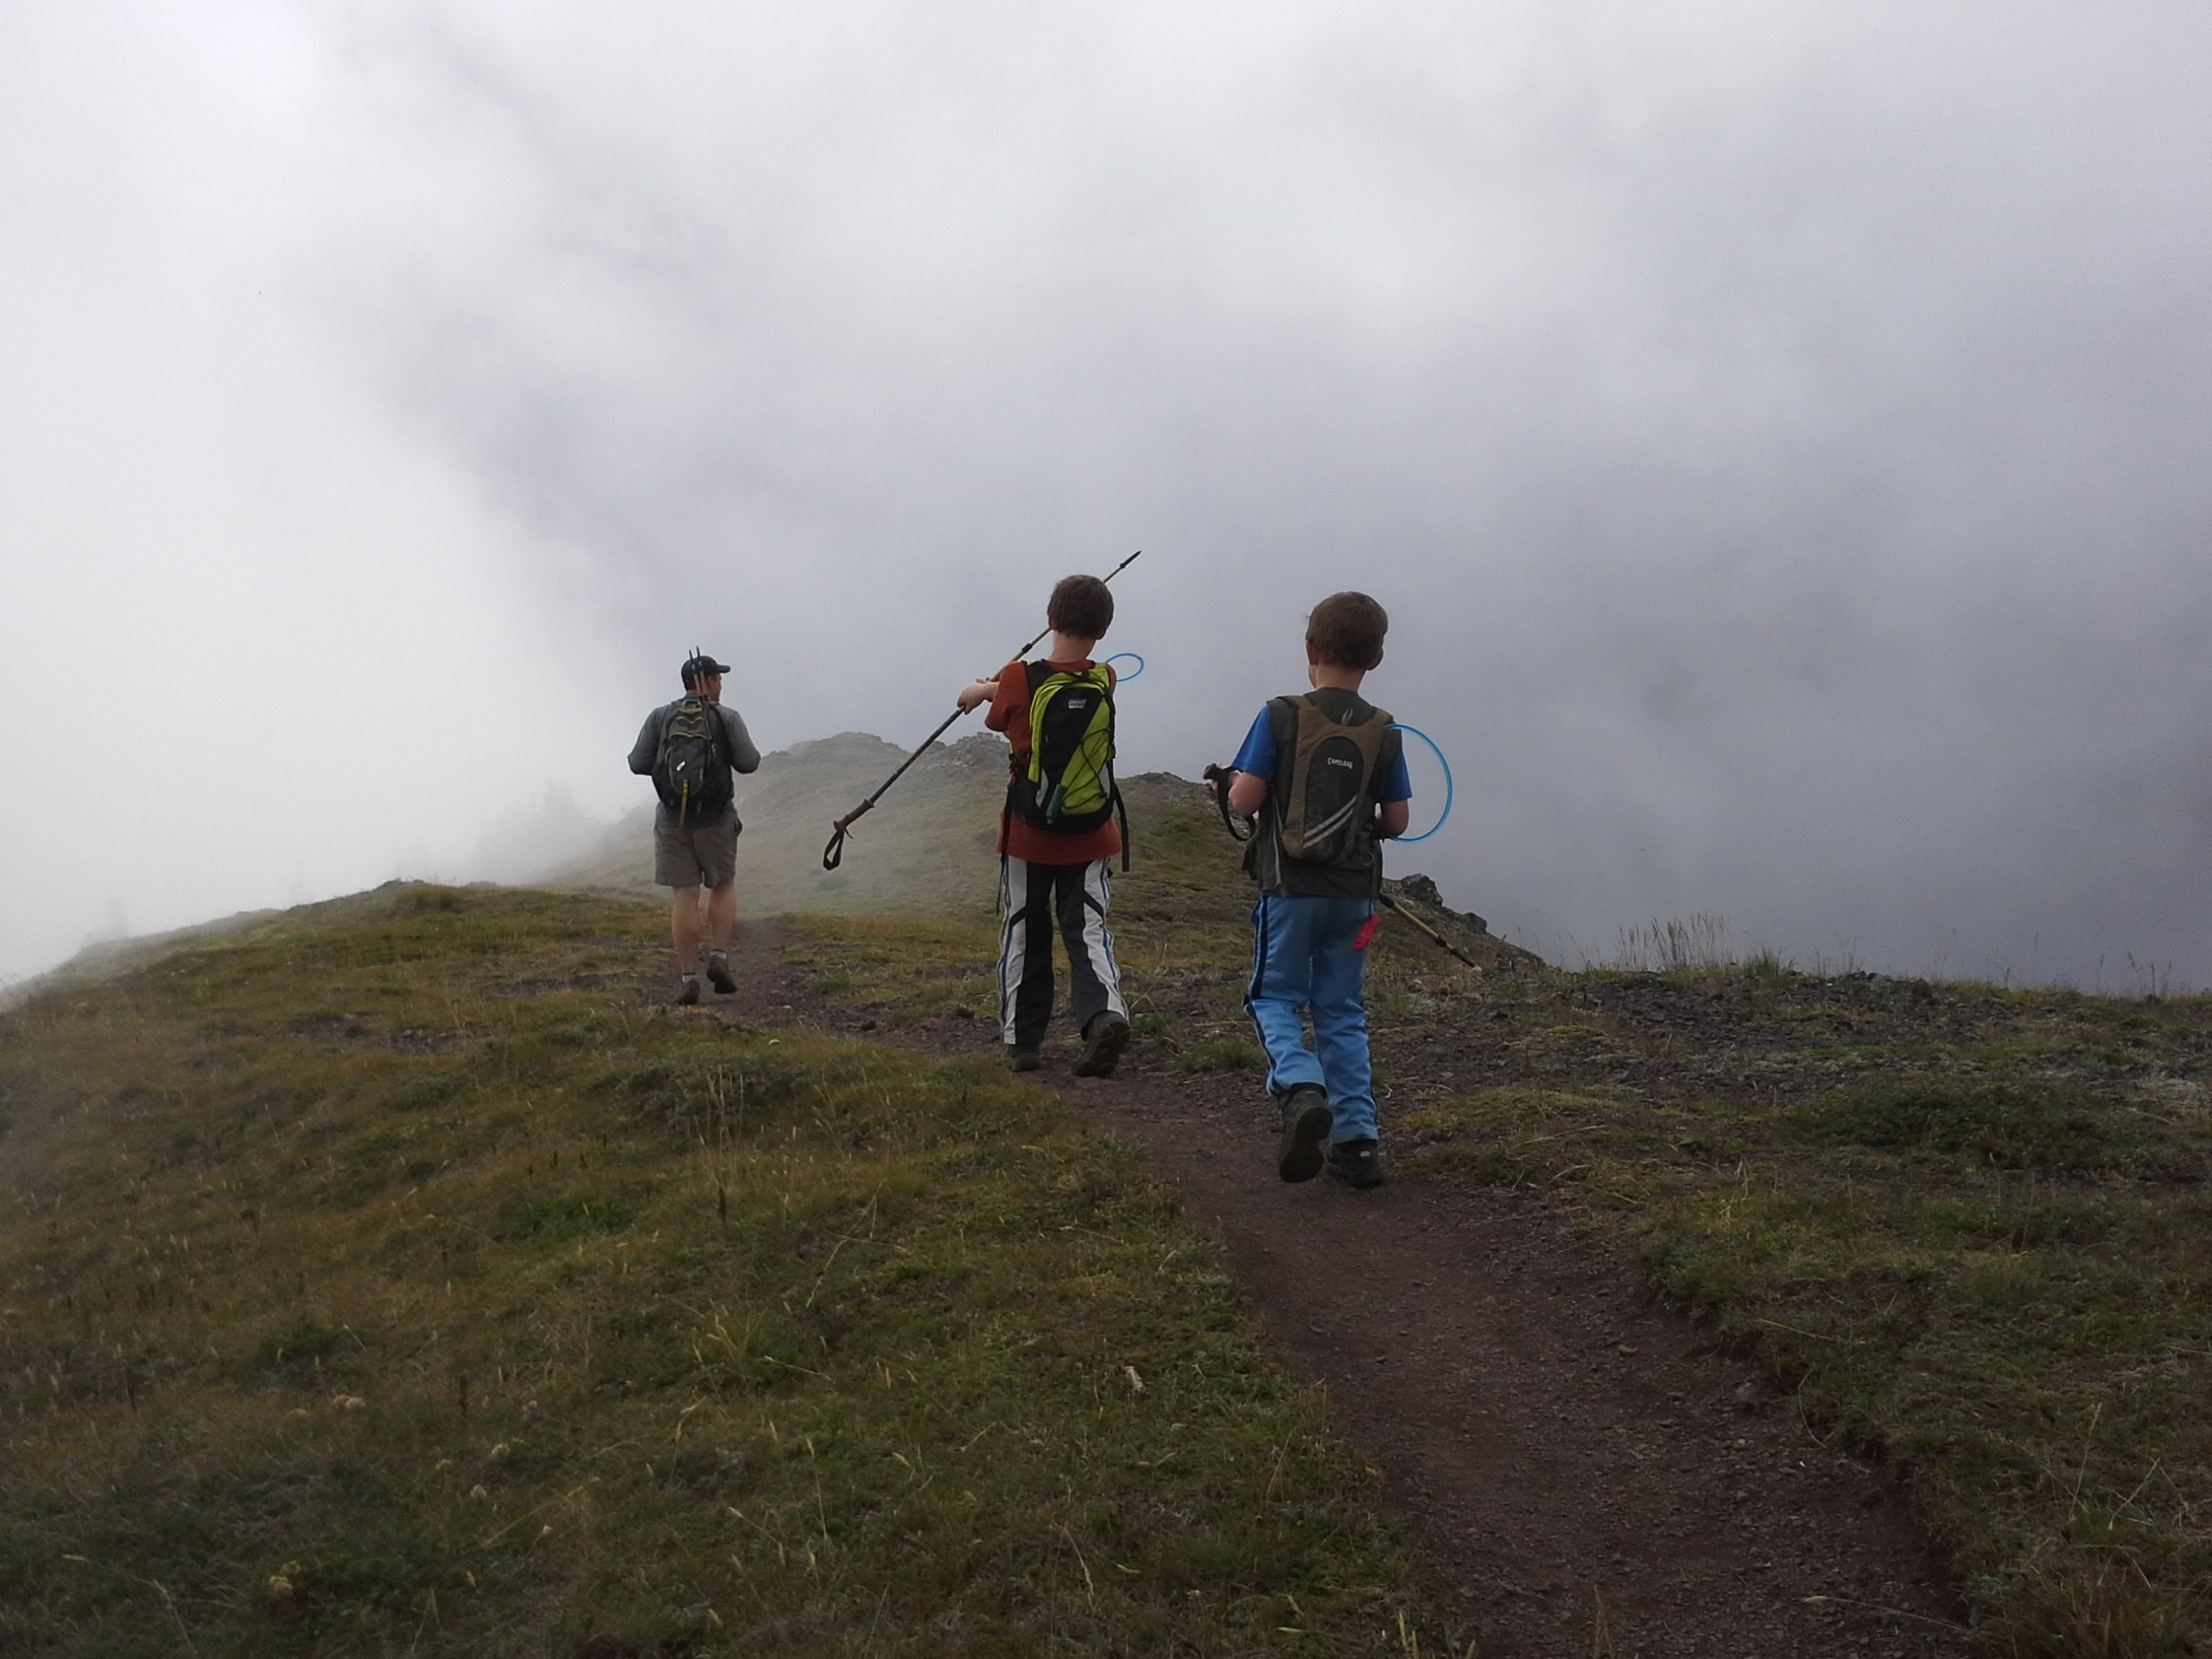 Nearly at the summit of Mt. Townsend! We're still hoping we'll eventually break through the clouds.